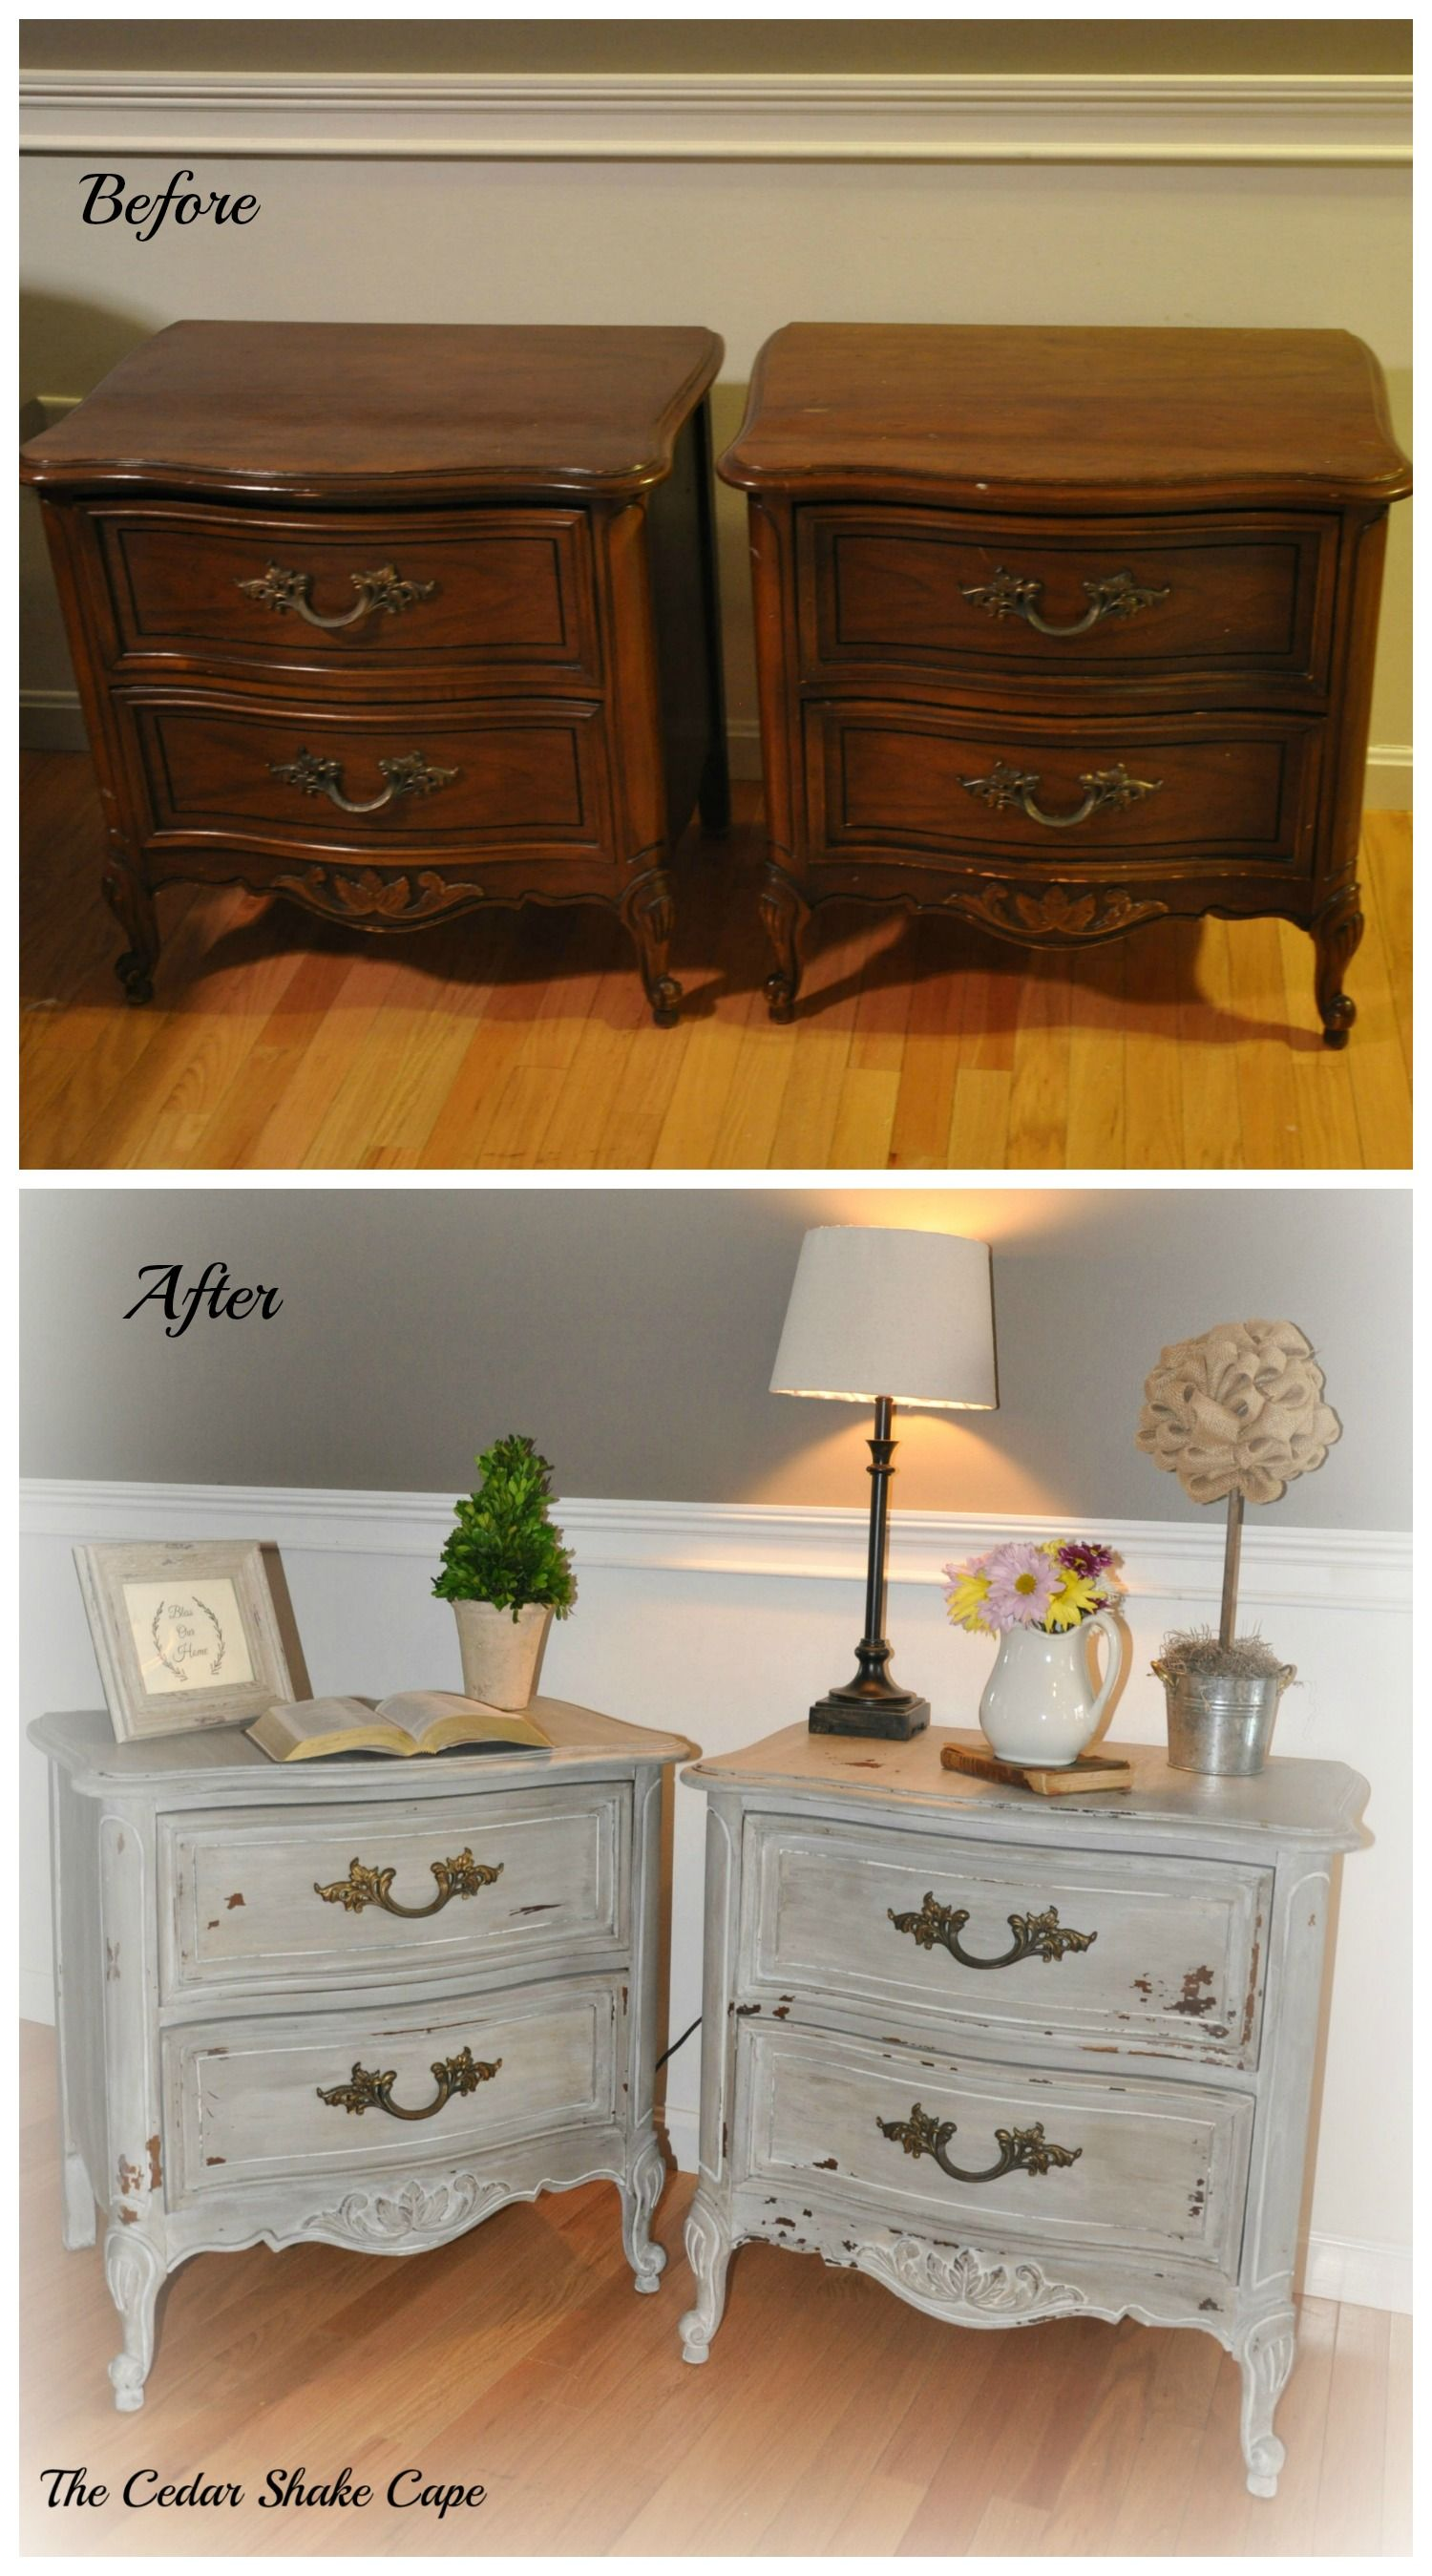 Restauración De Muebles Viejos French Nightstands Makeover Using Miss Mustards Seed 39s